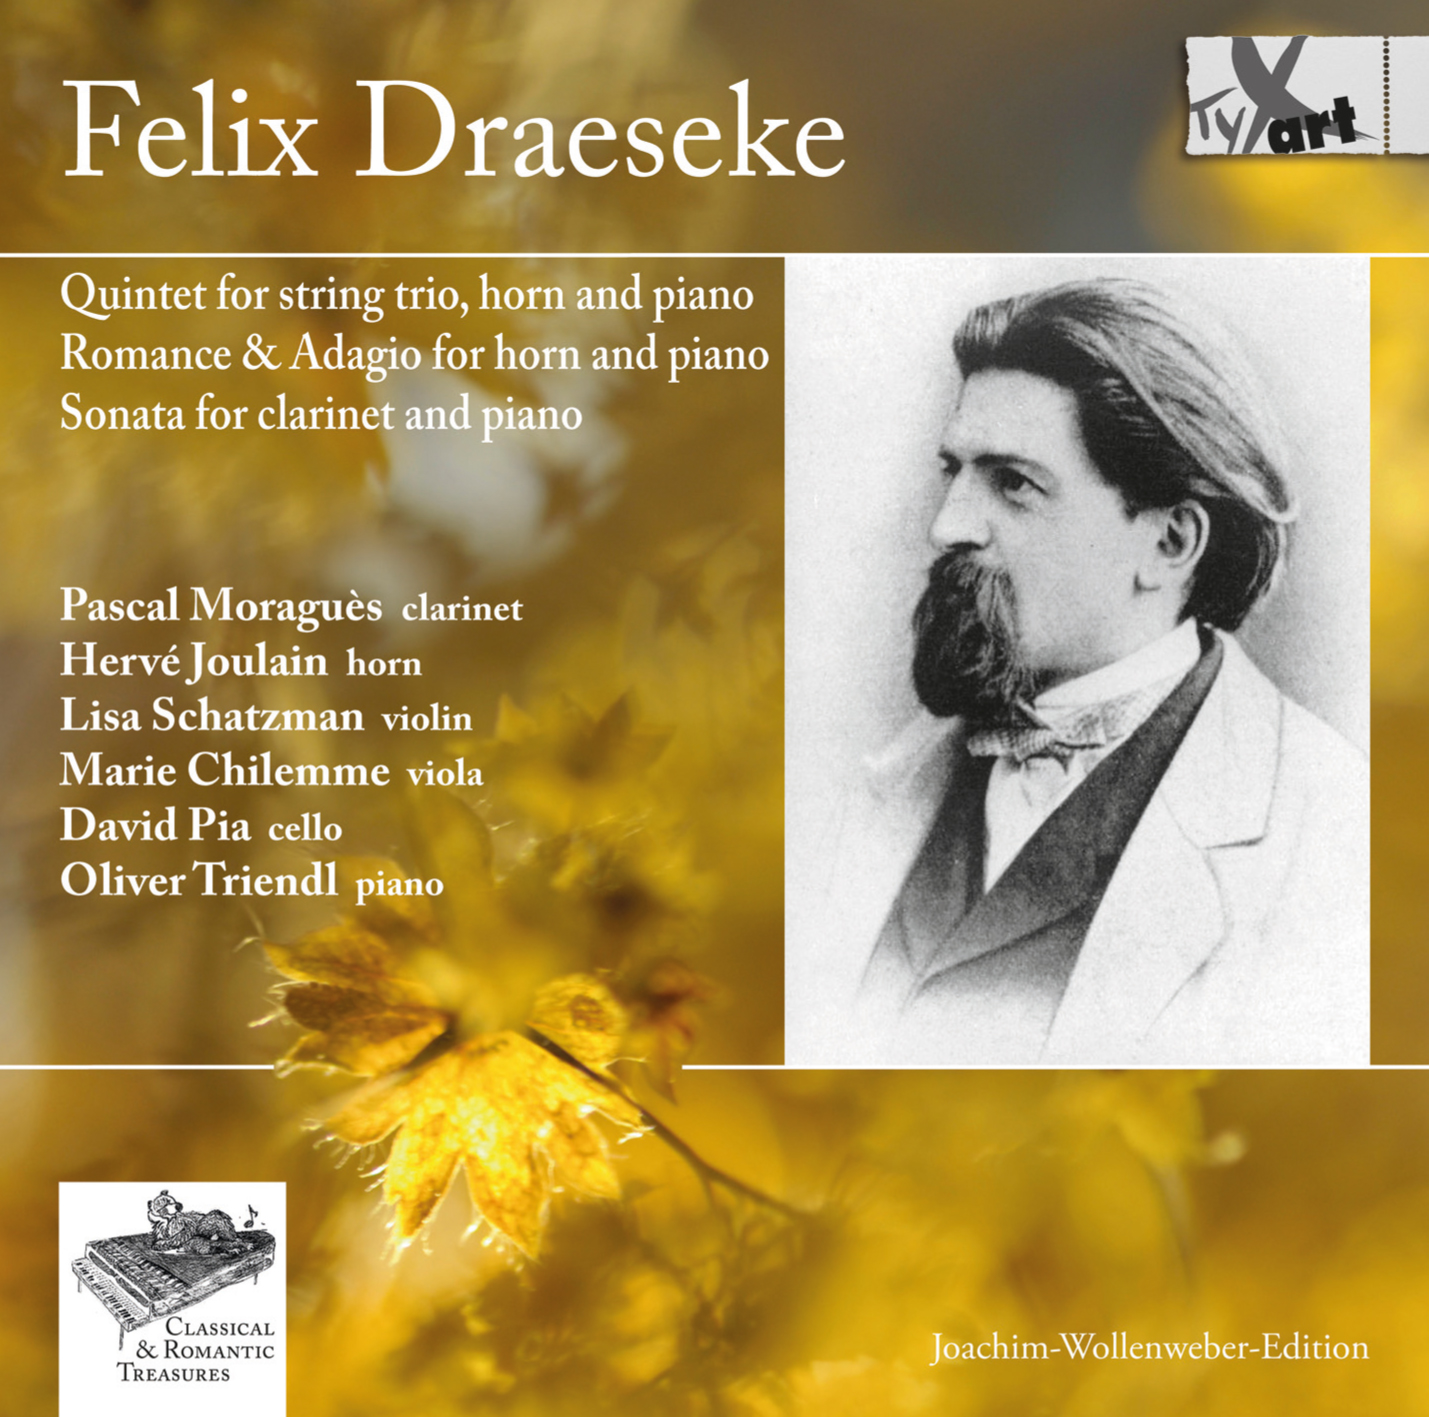 Felix Draeseke: Chamber Music Works Op.48, Op.32, Op.31 and Op.38